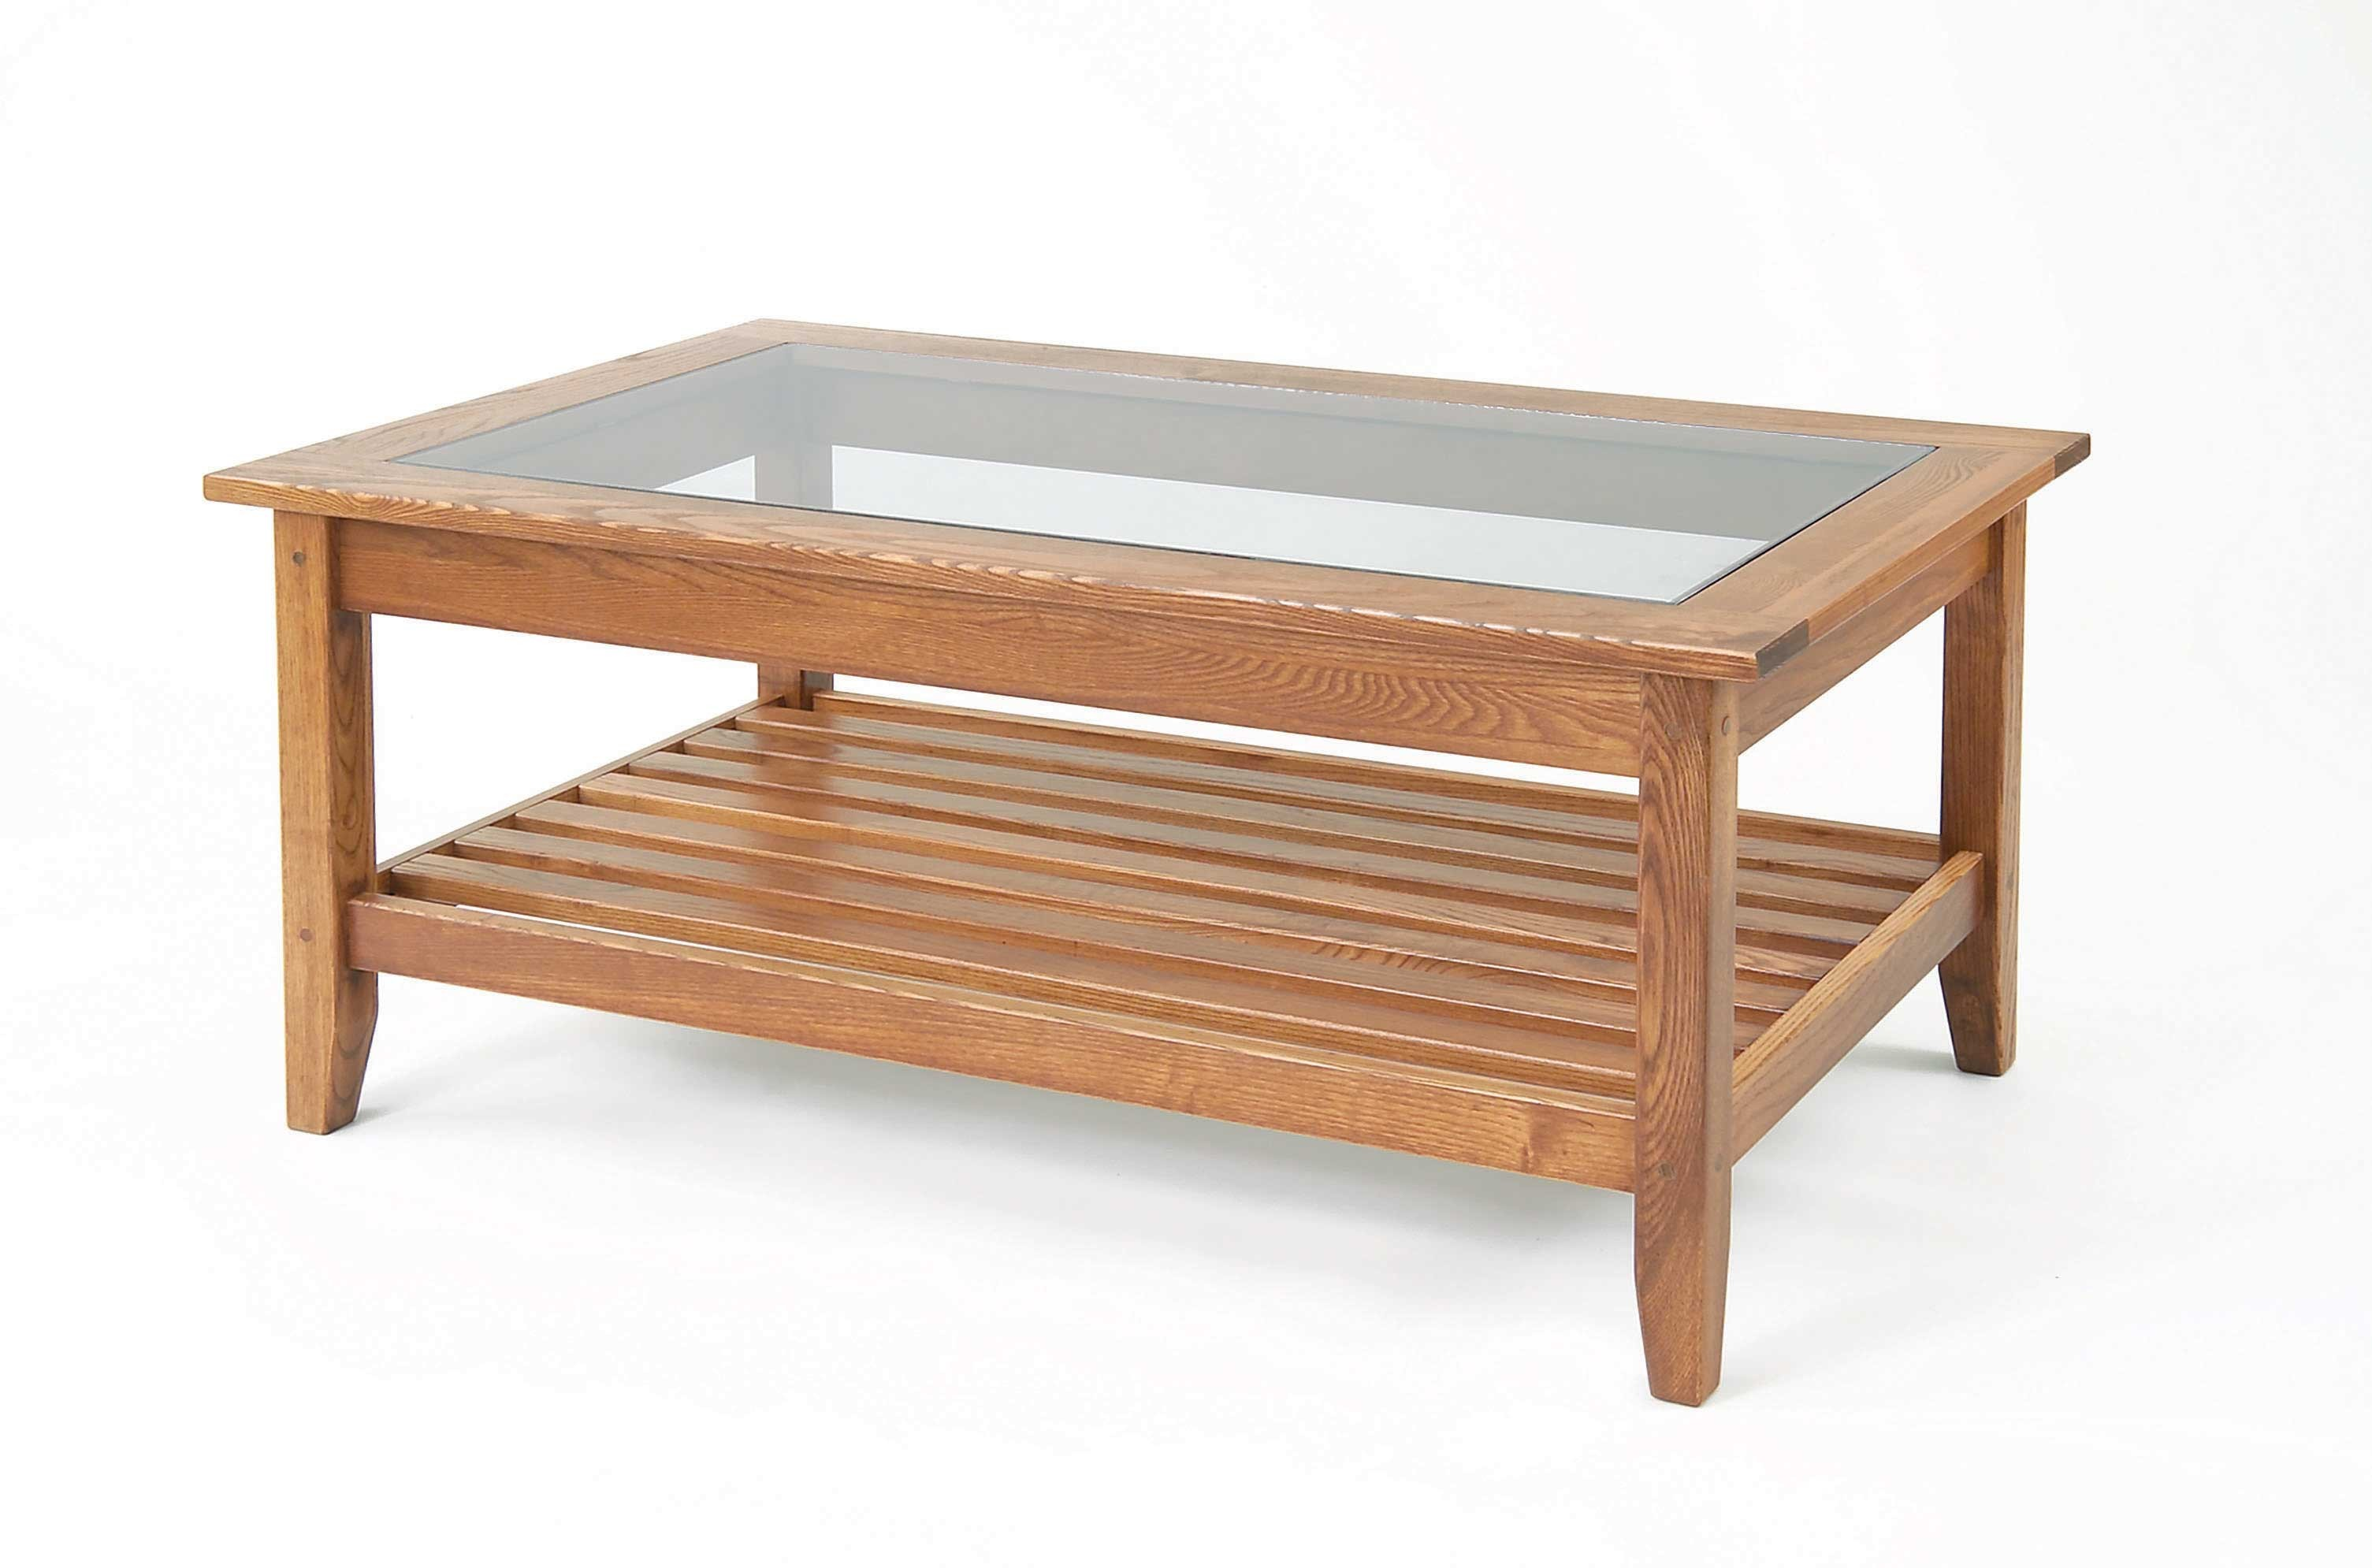 Glass Top Coffee Tables Wood Table For Antique Glass Or Wood Coffee Table And Painted Wood And Glass Coffee Tables (View 9 of 9)